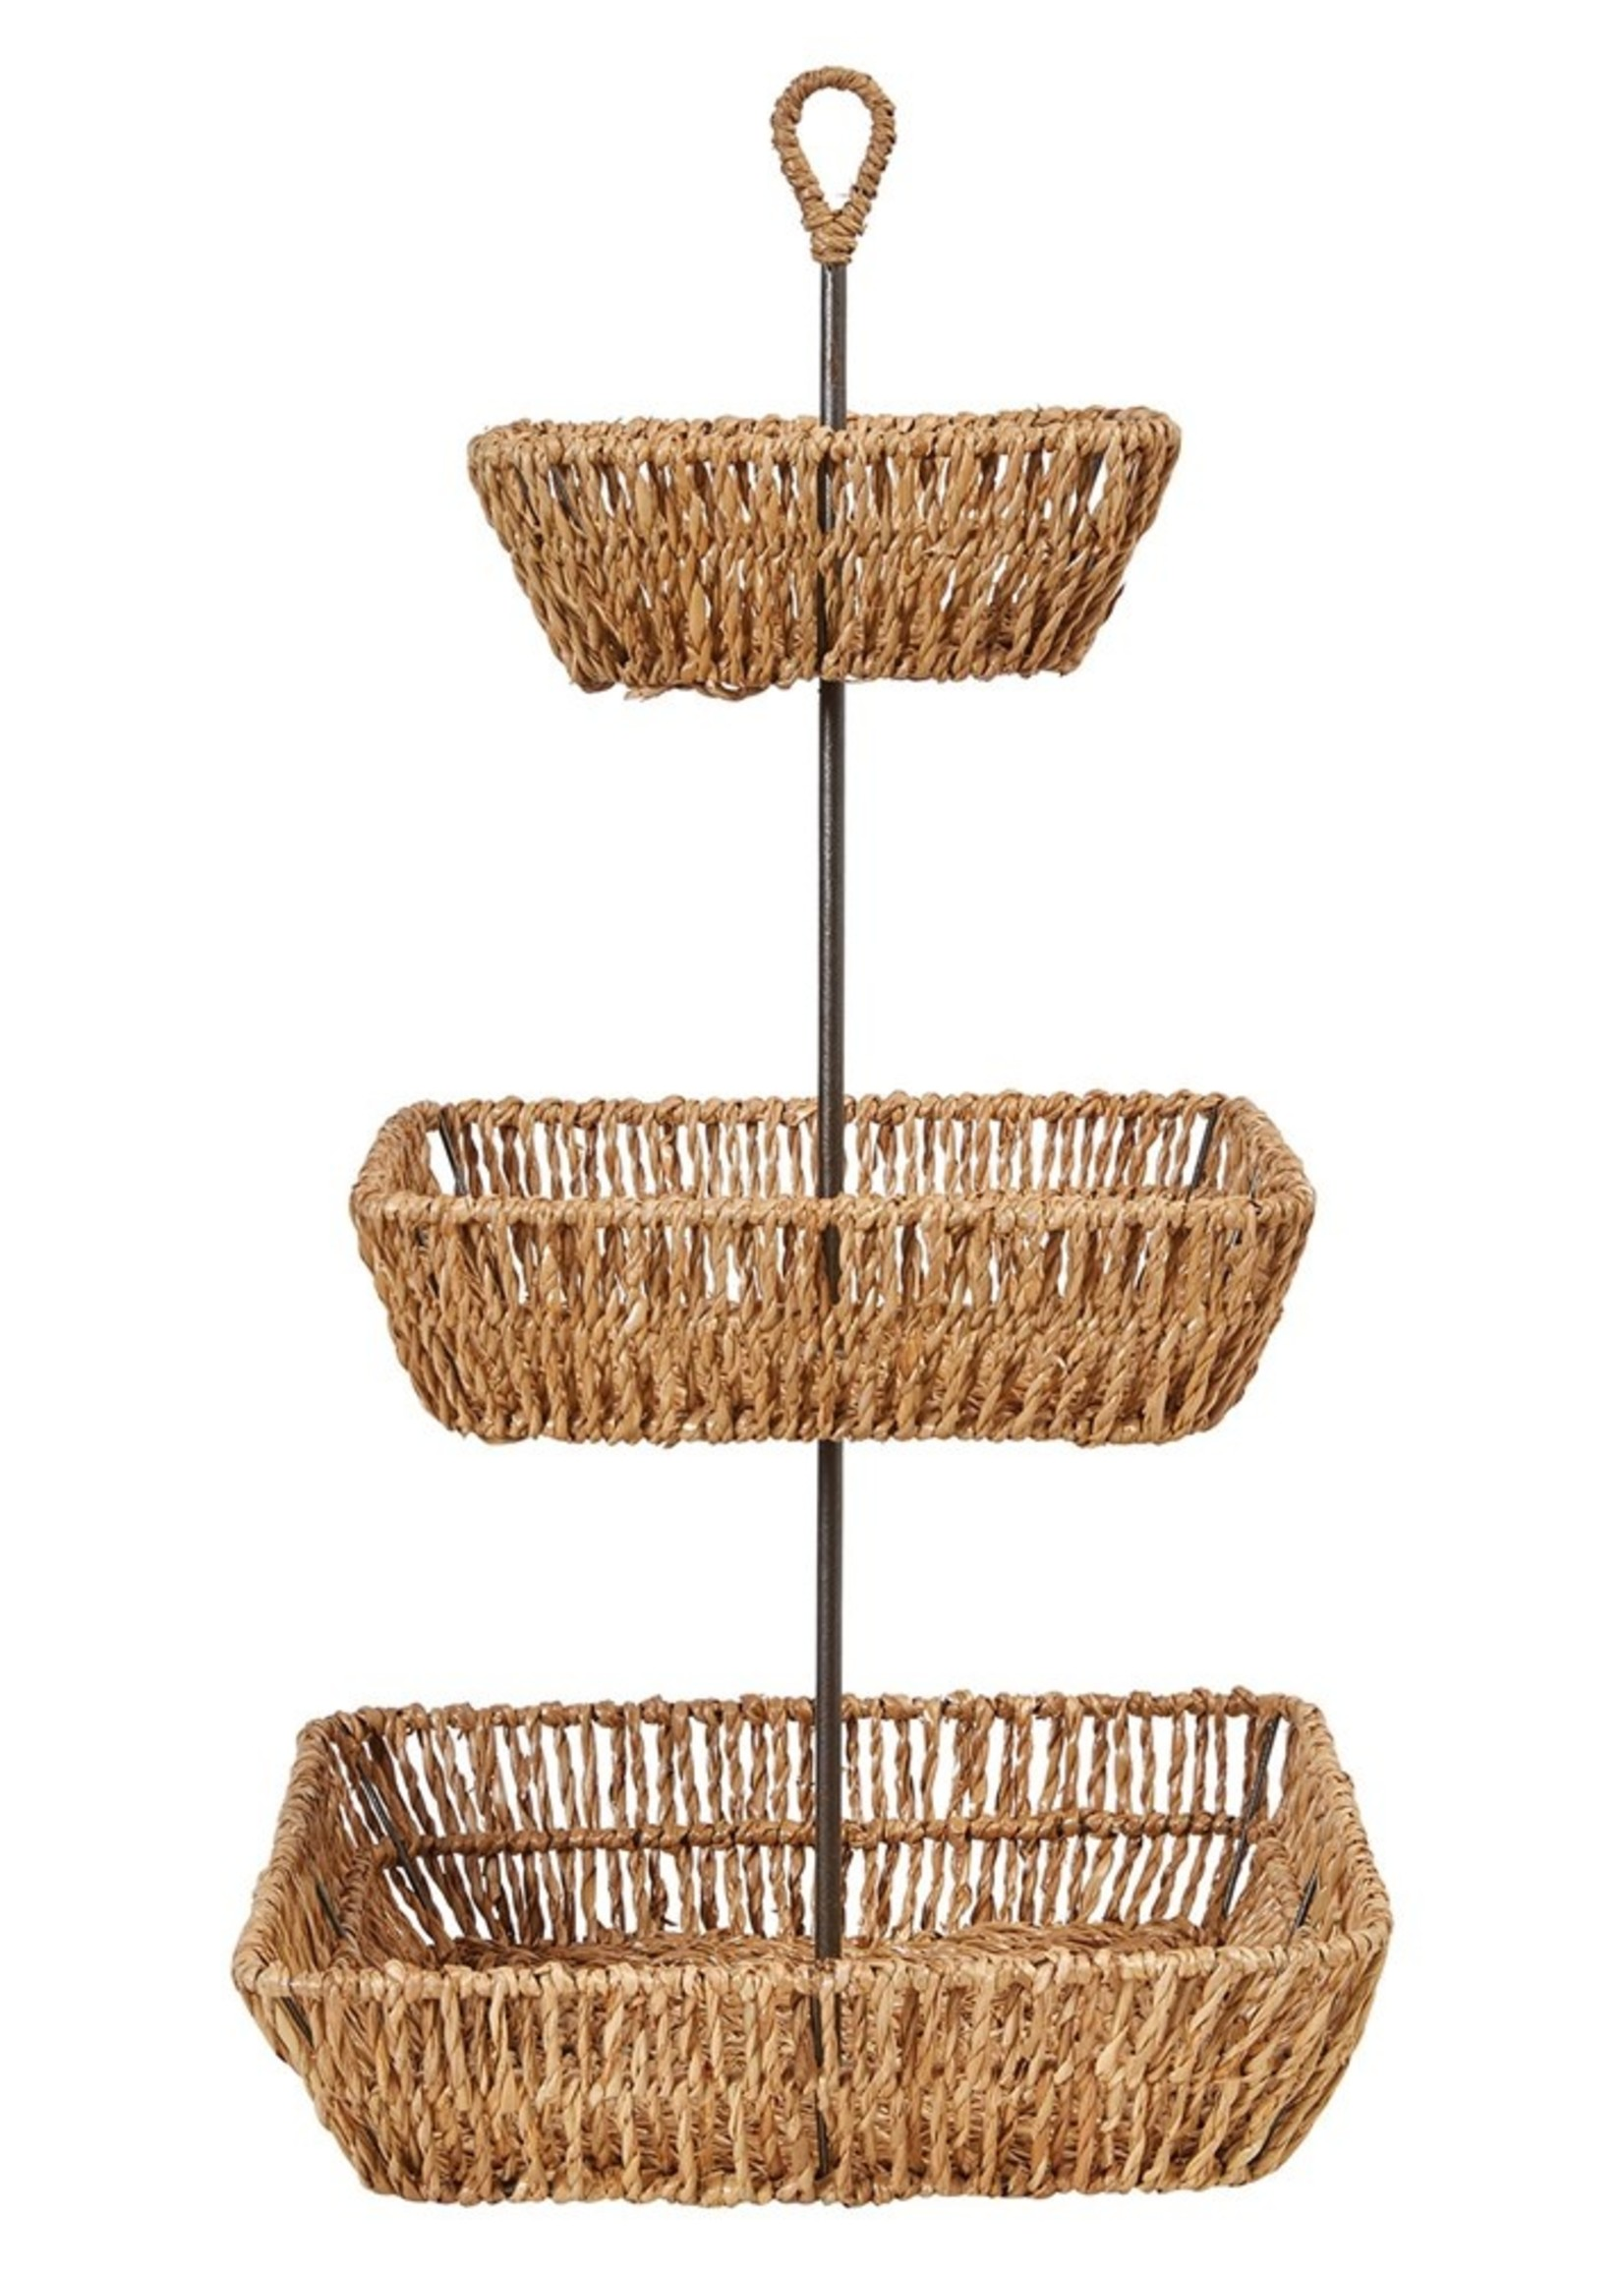 Decorative Hand-Woven Seagrass 3-Tier Tray w/ Handle